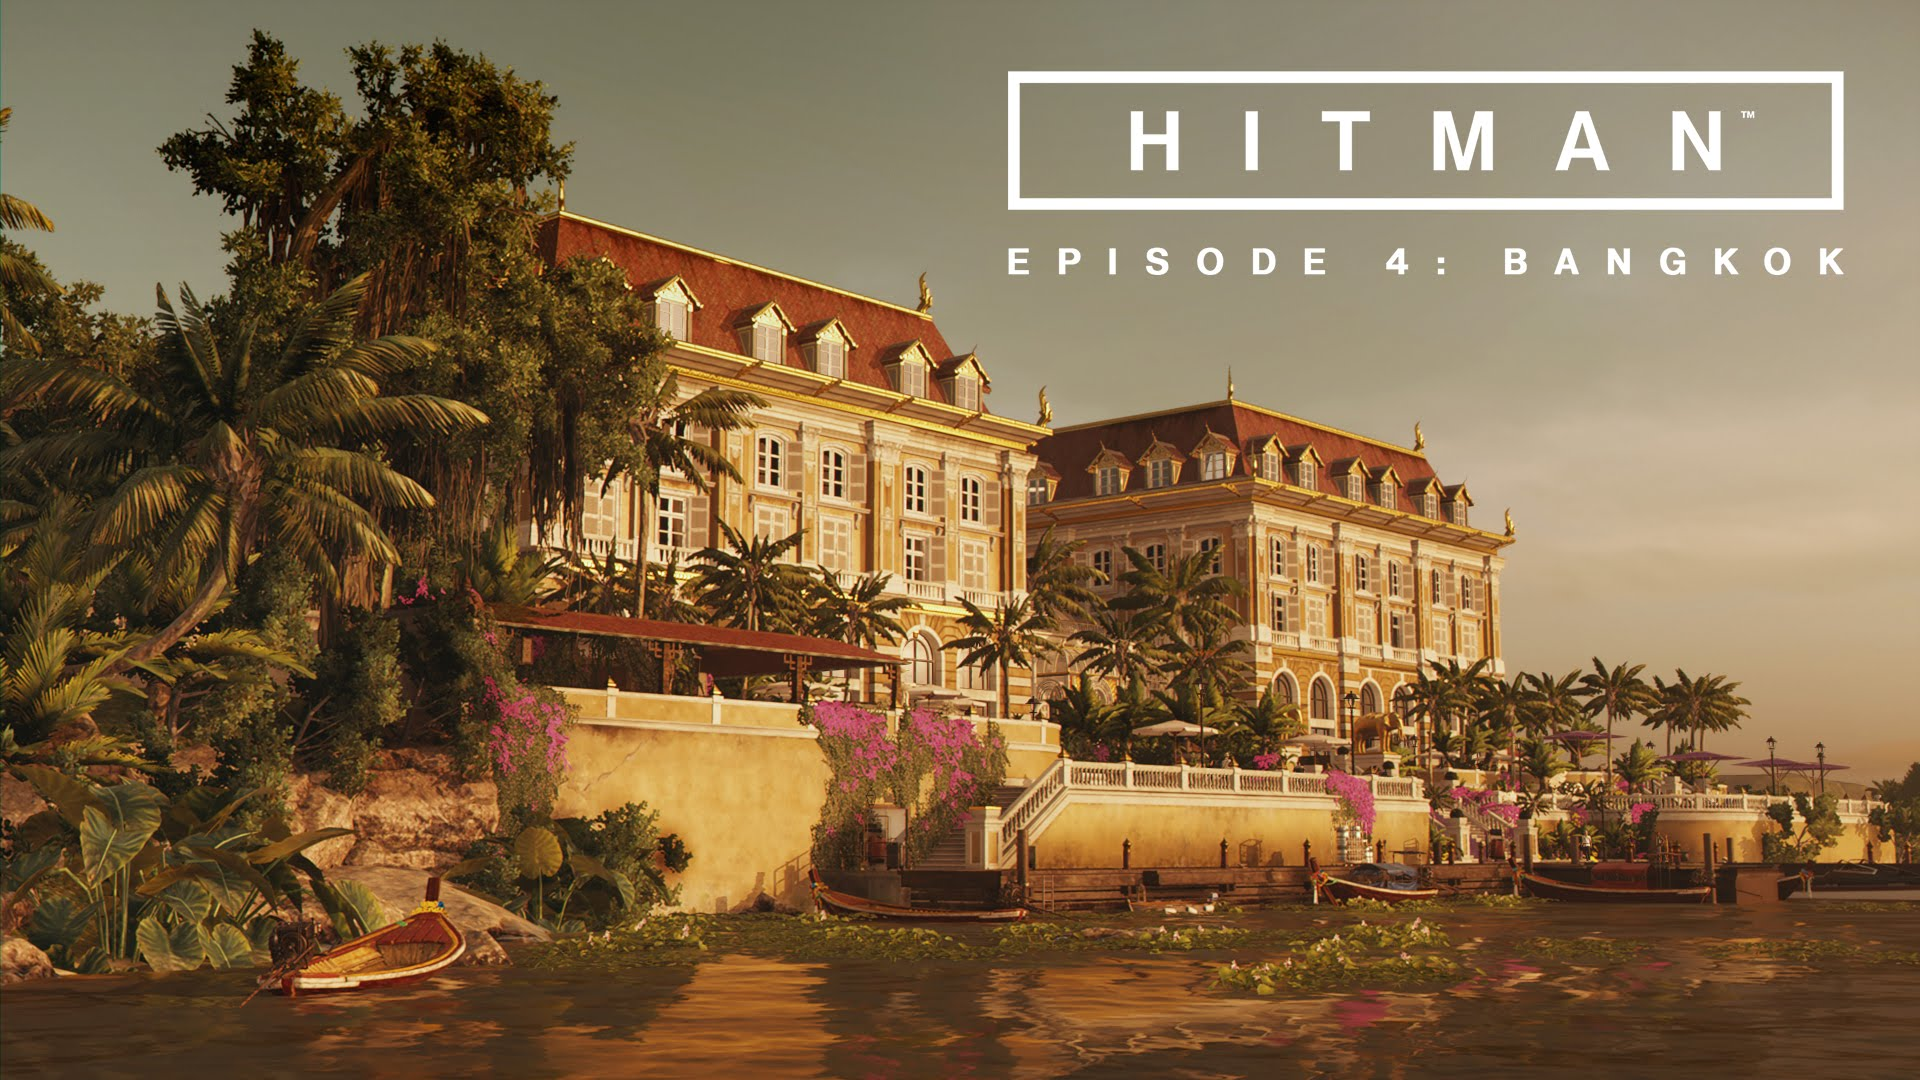 HITMAN: Episode 4 - Bangkok Trailer